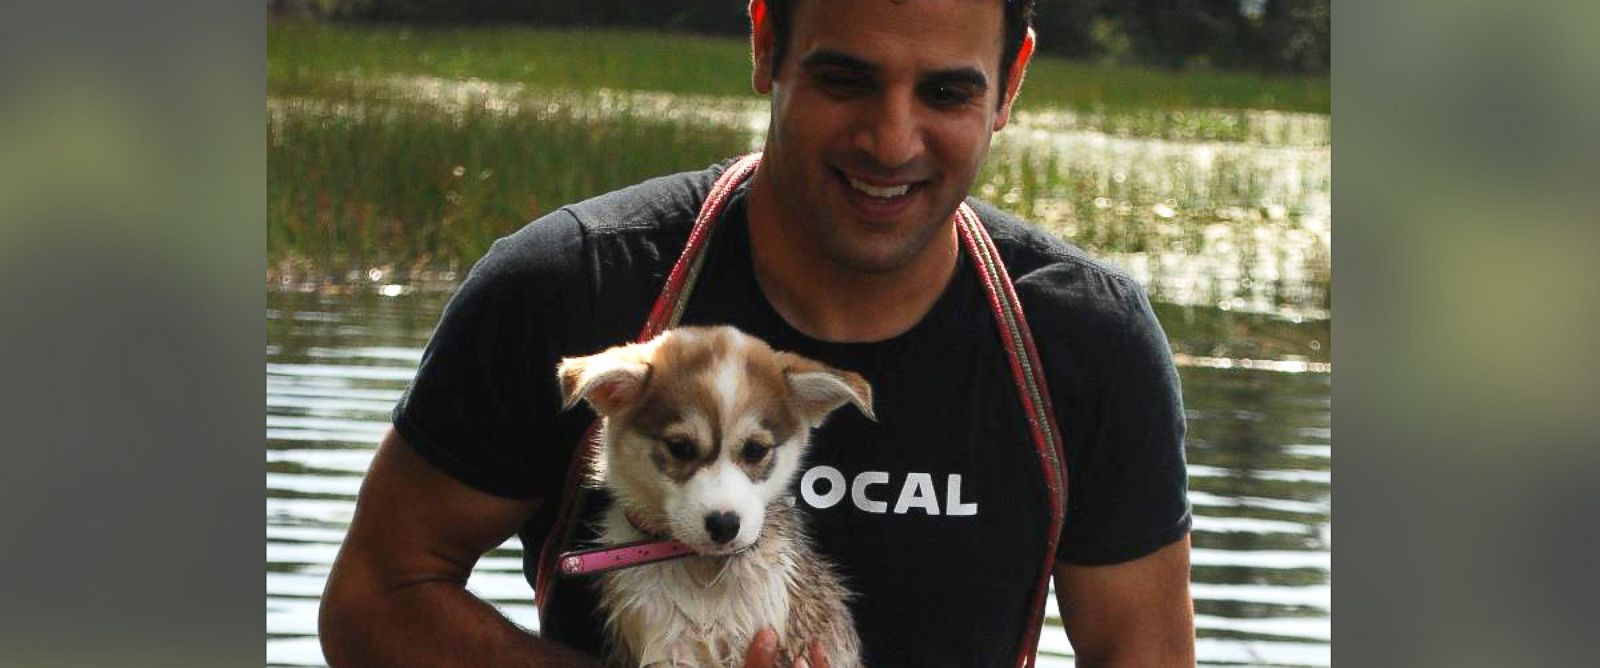 PHOTO: Rodney Habib and his dog Shubie.